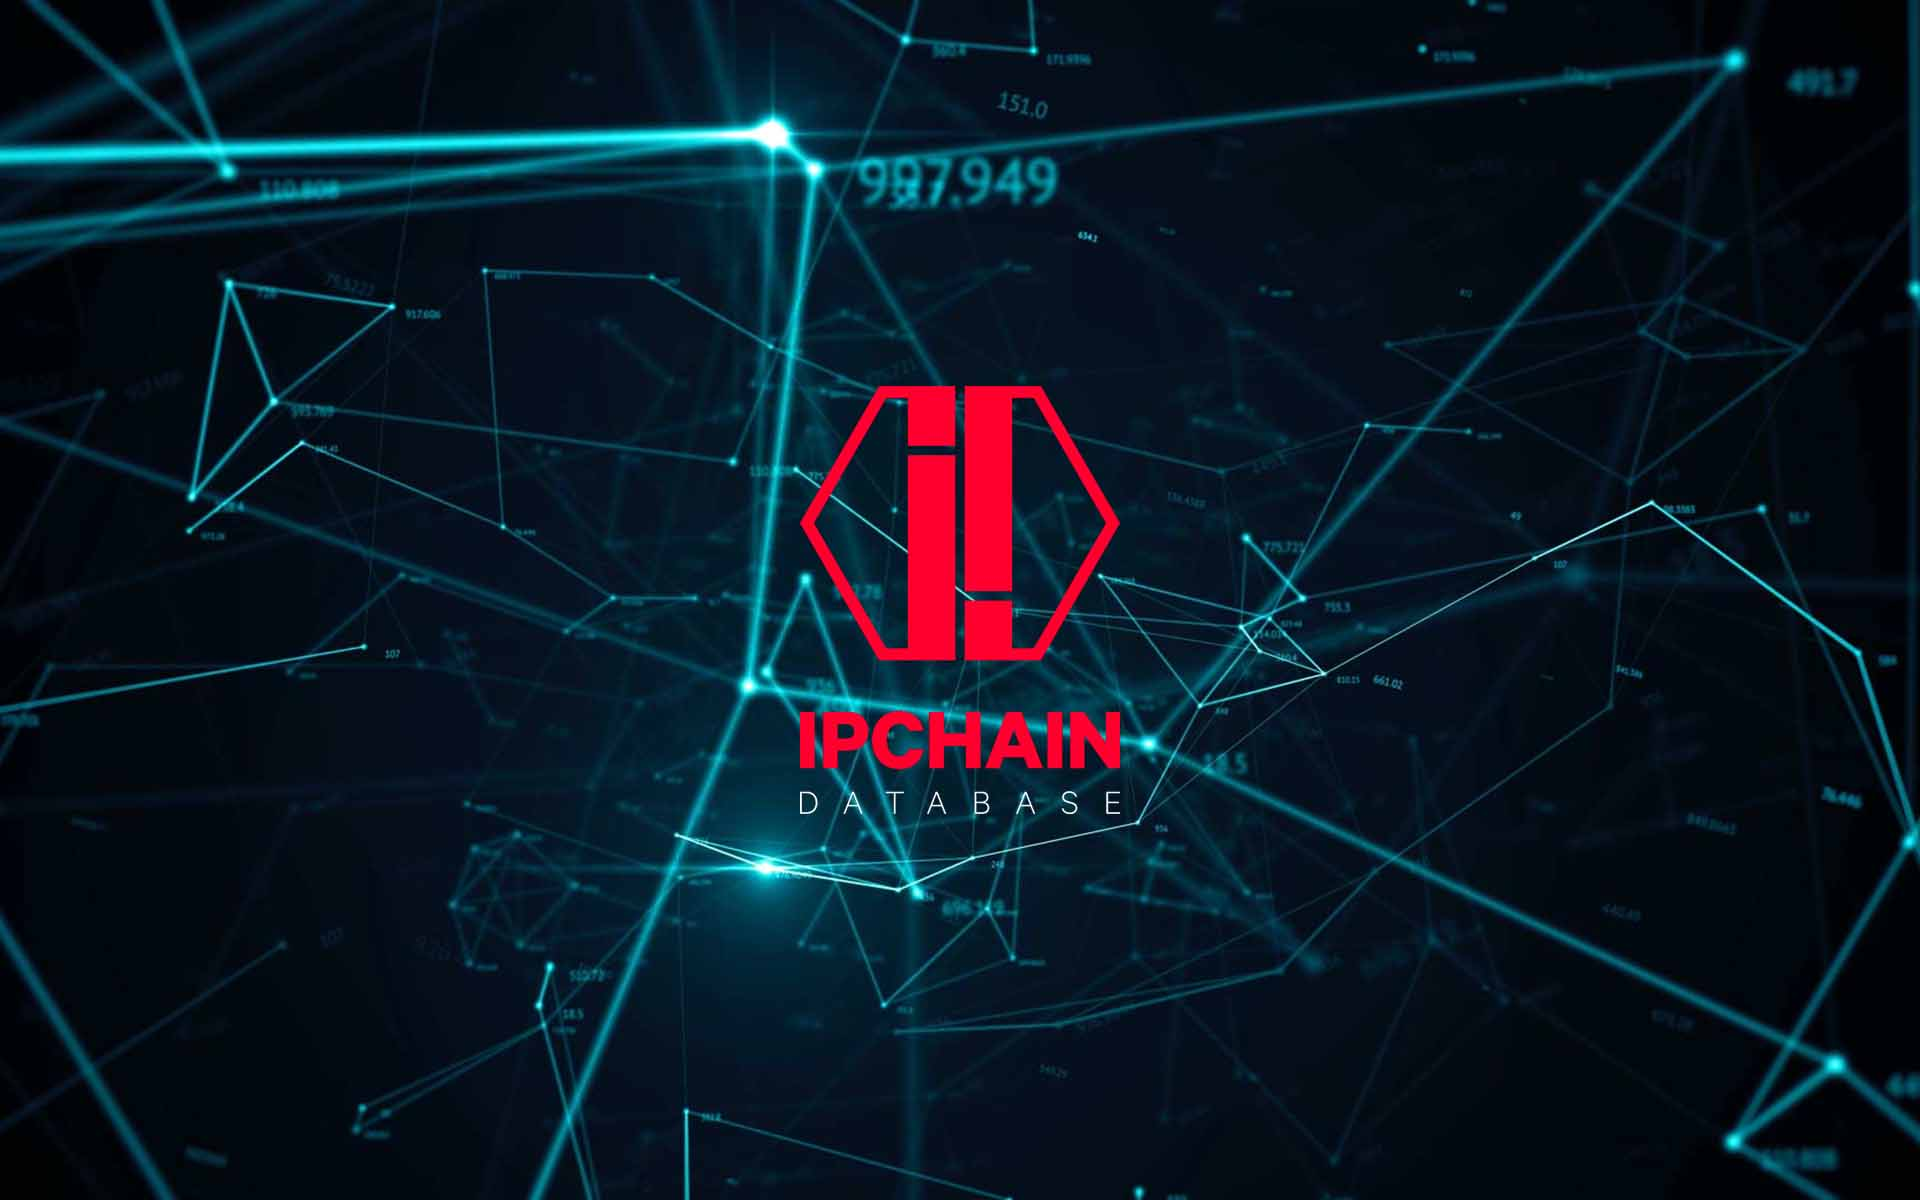 IPCHAIN Database